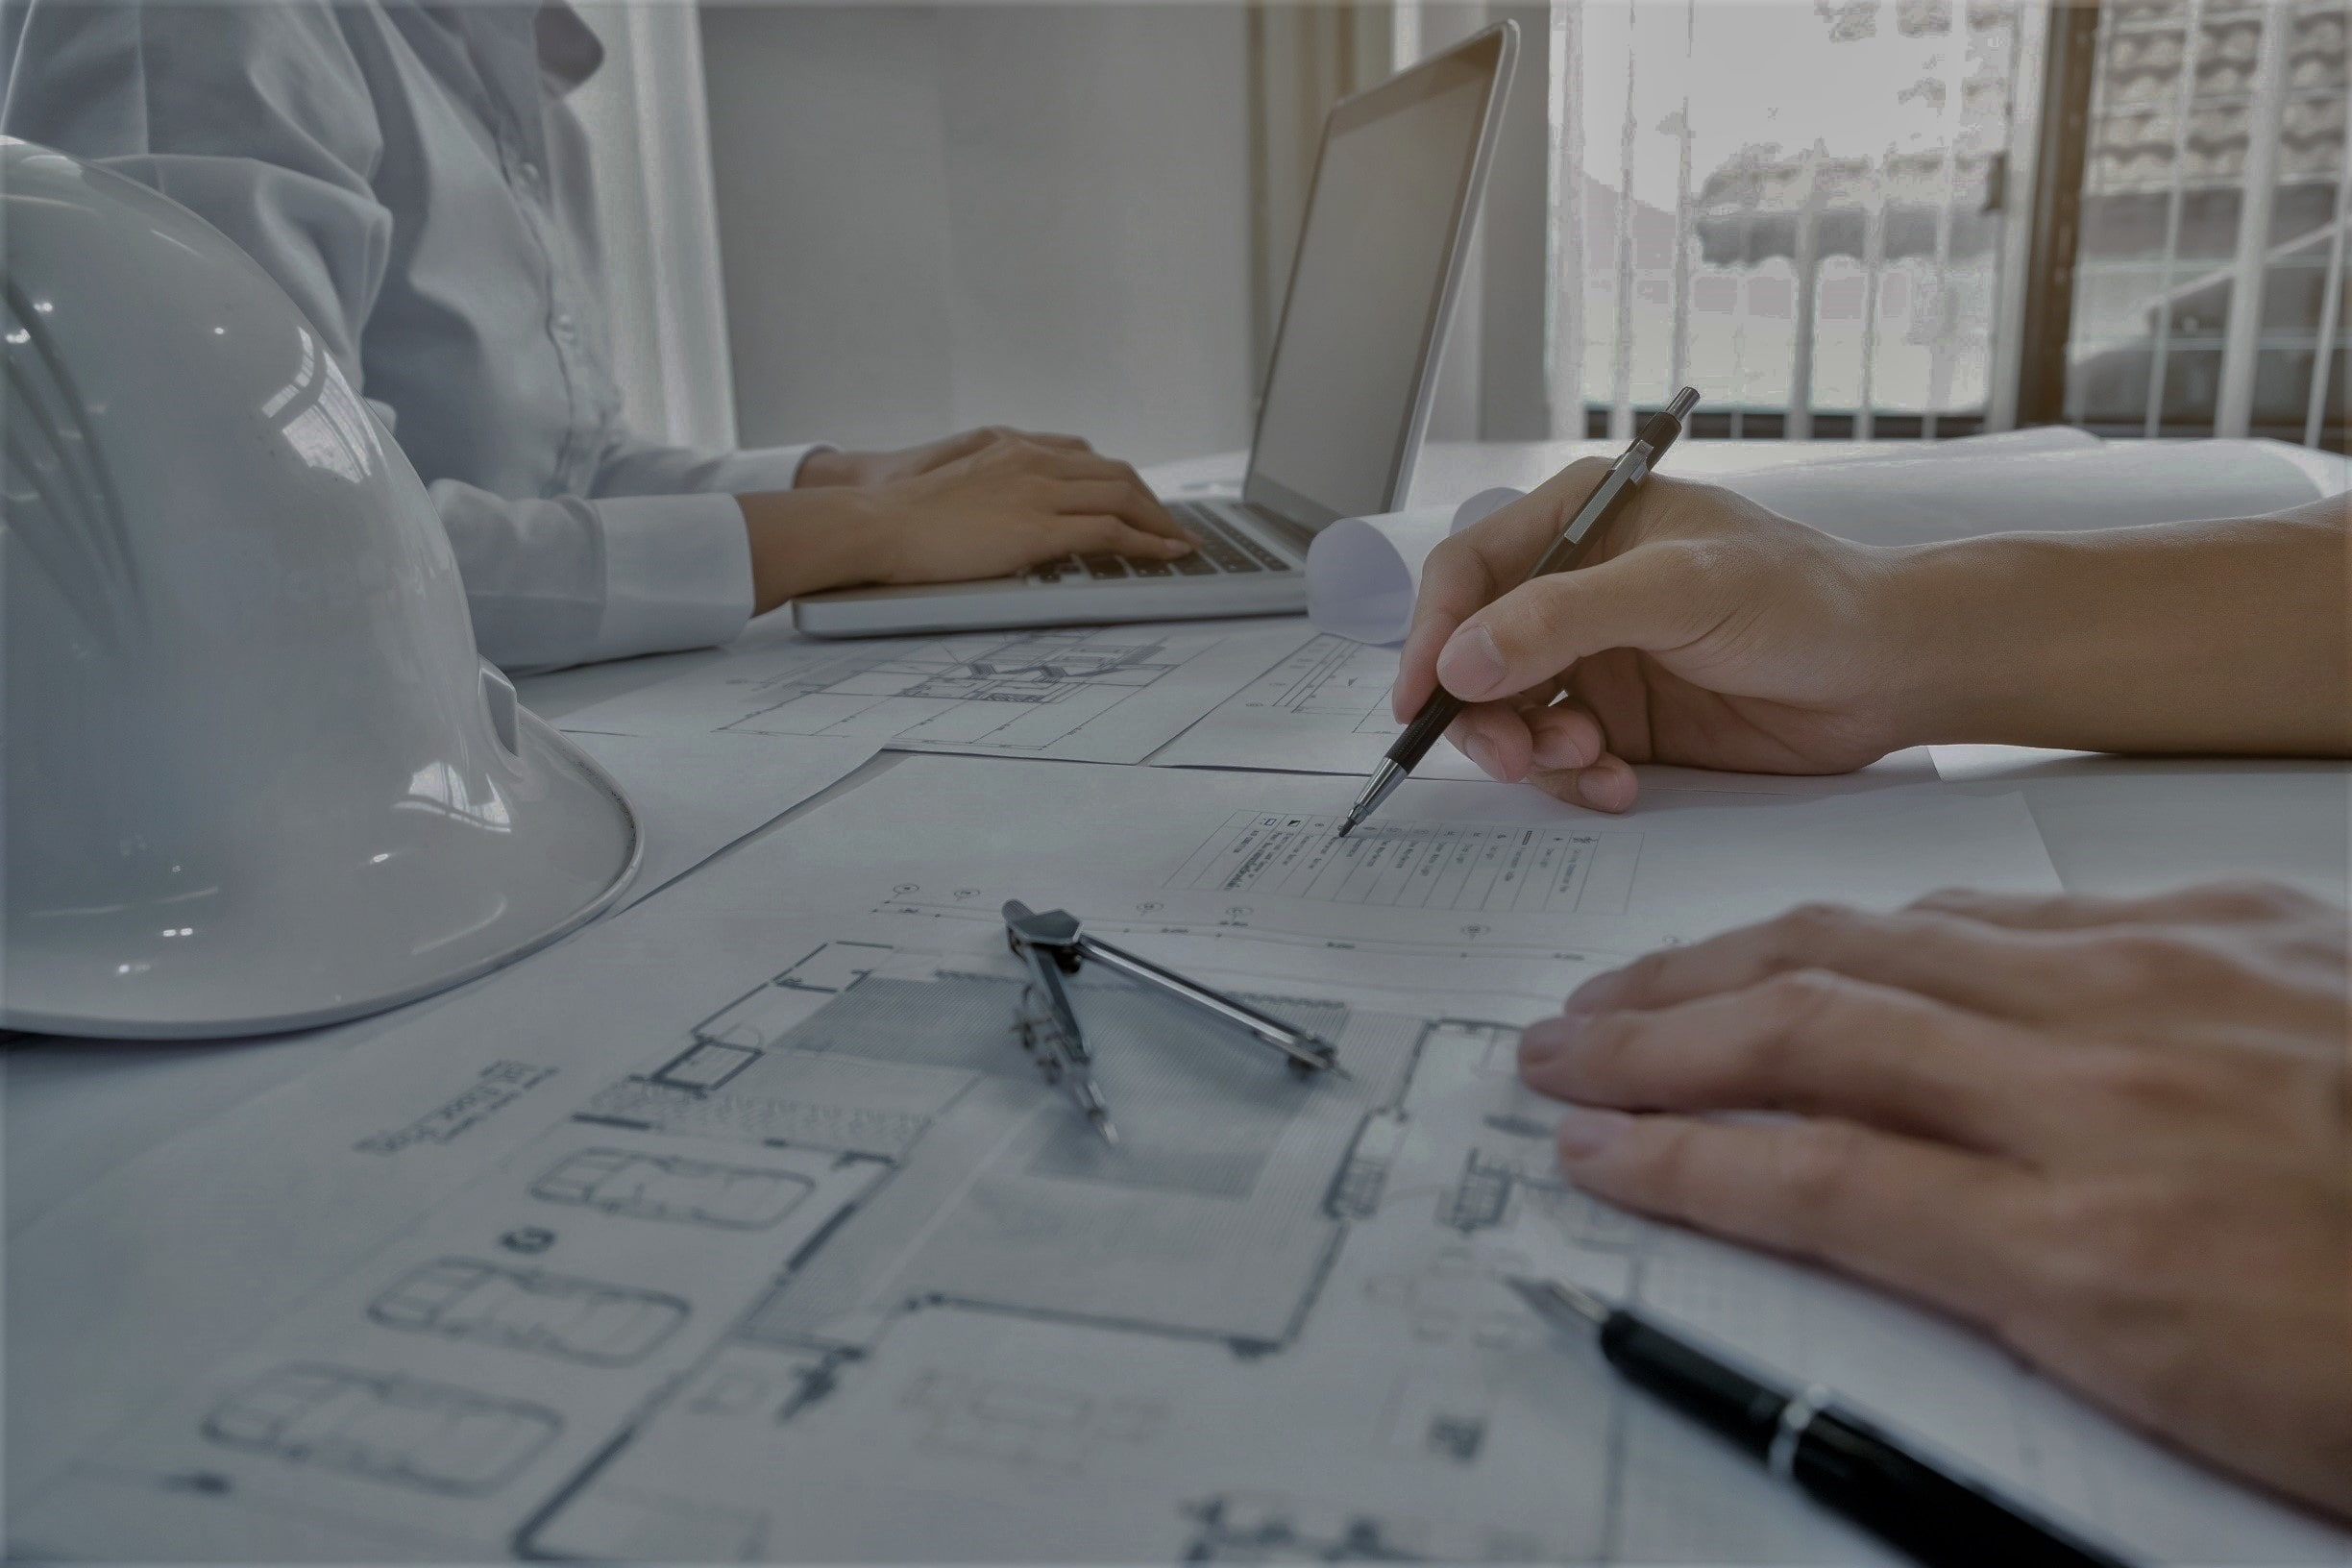 engineer-meeting-architectural-project-working-with-partner (1)